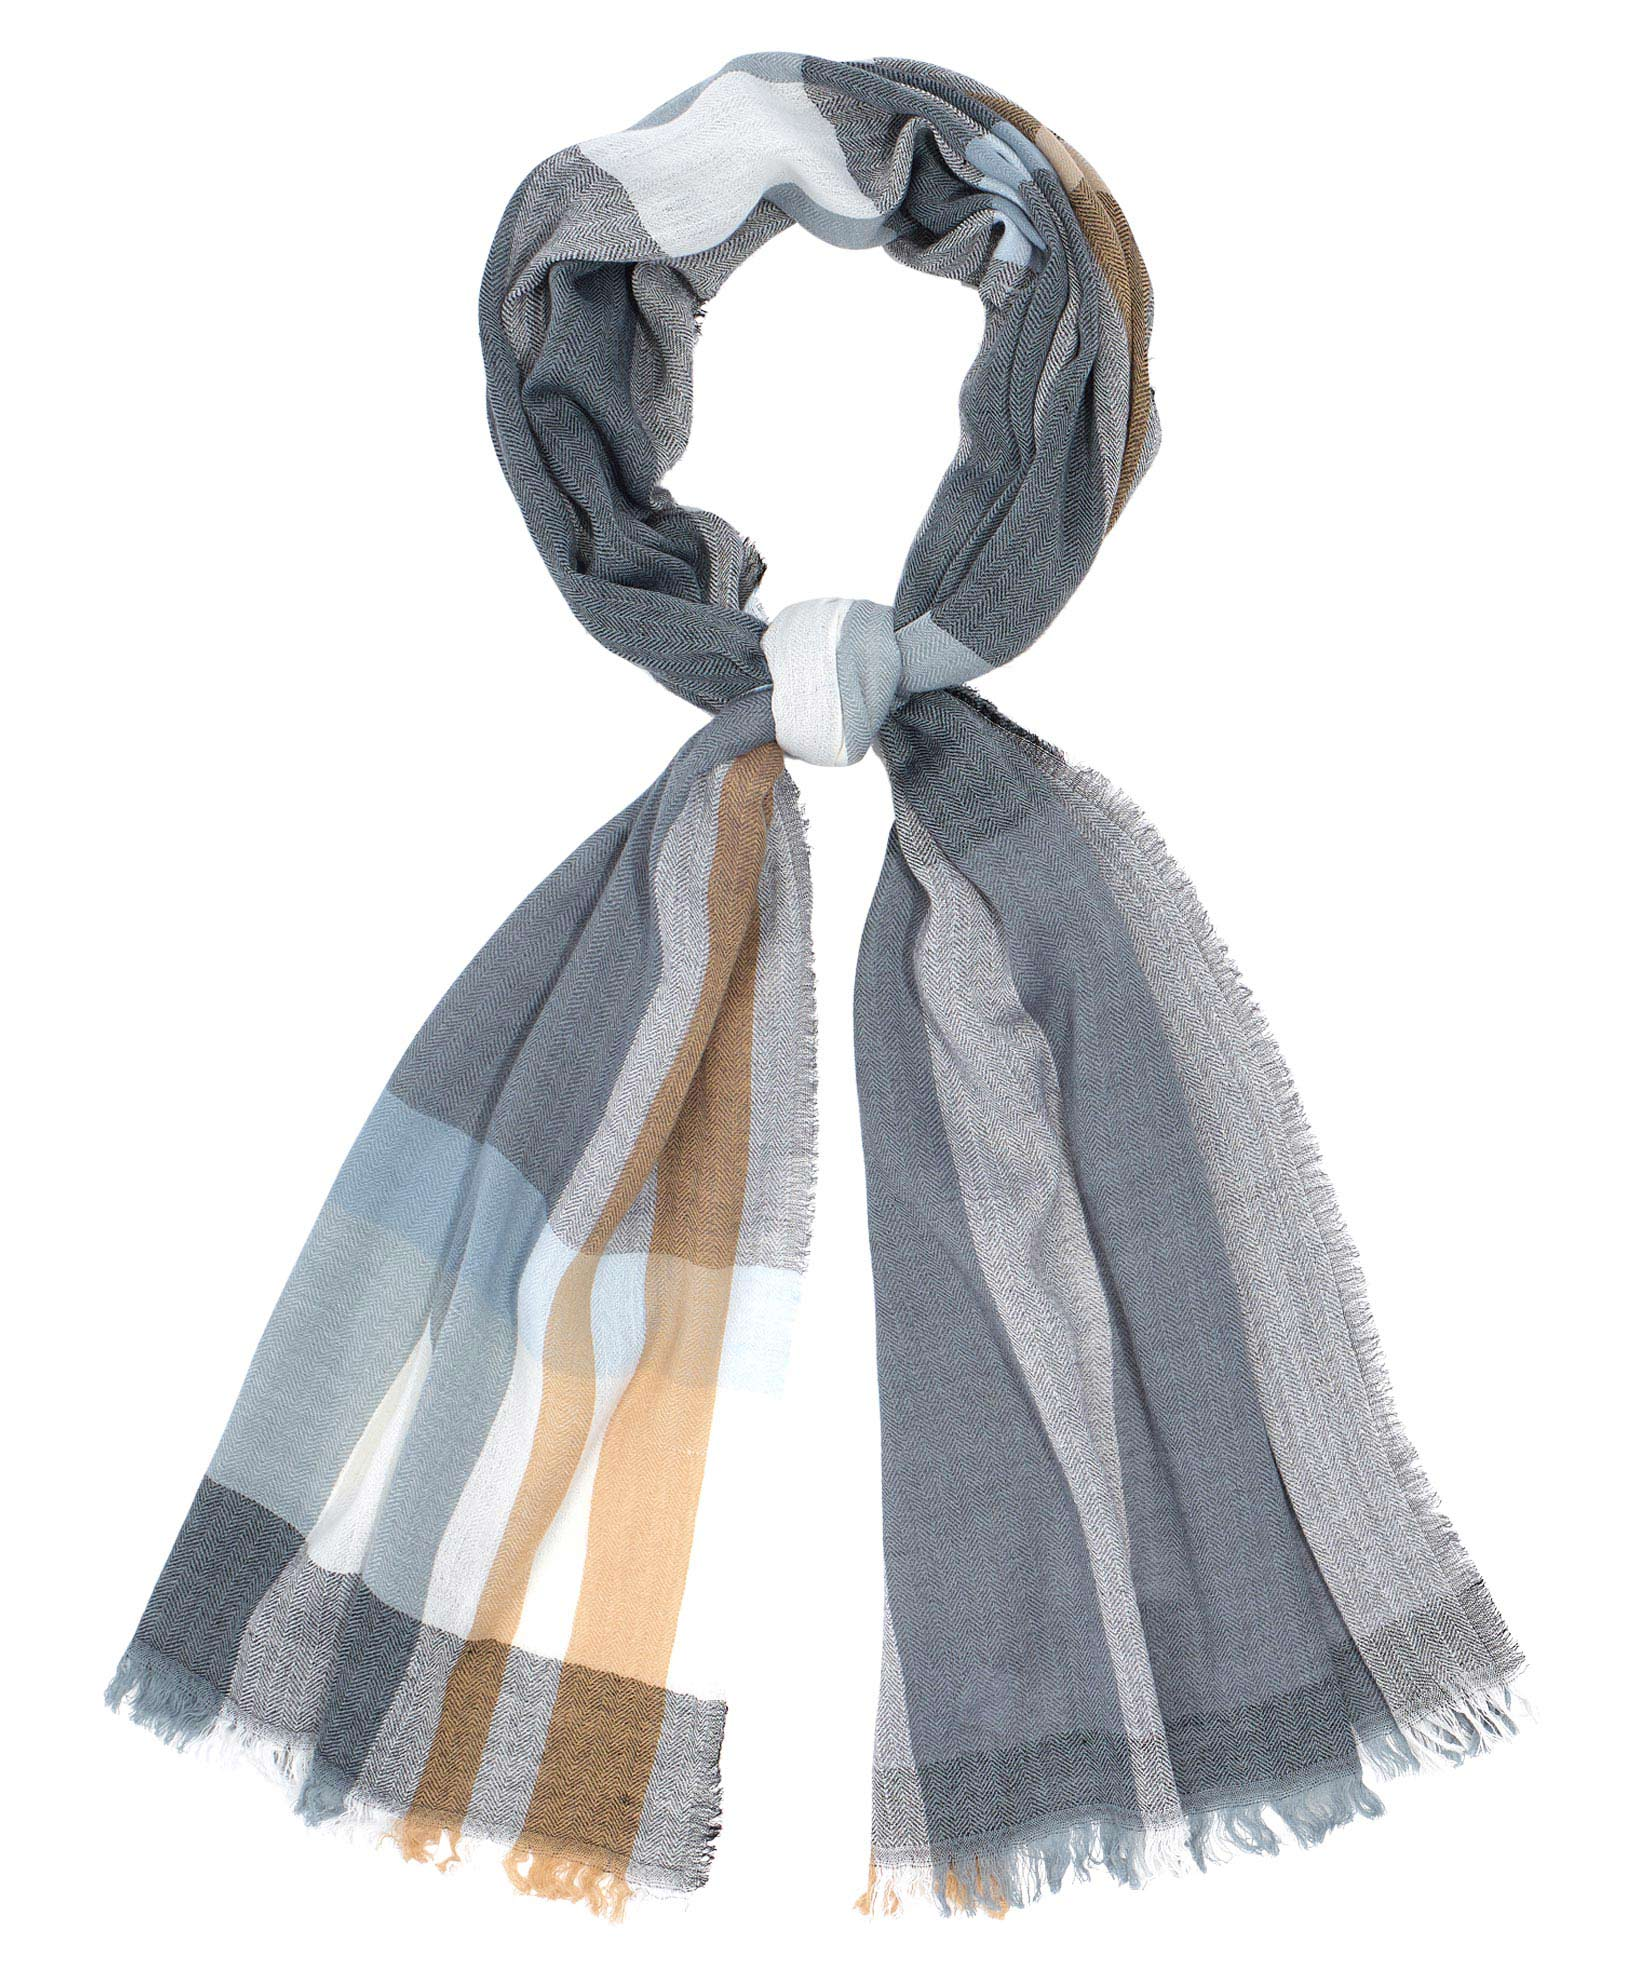 Oversize Plaid Oblong Scarf